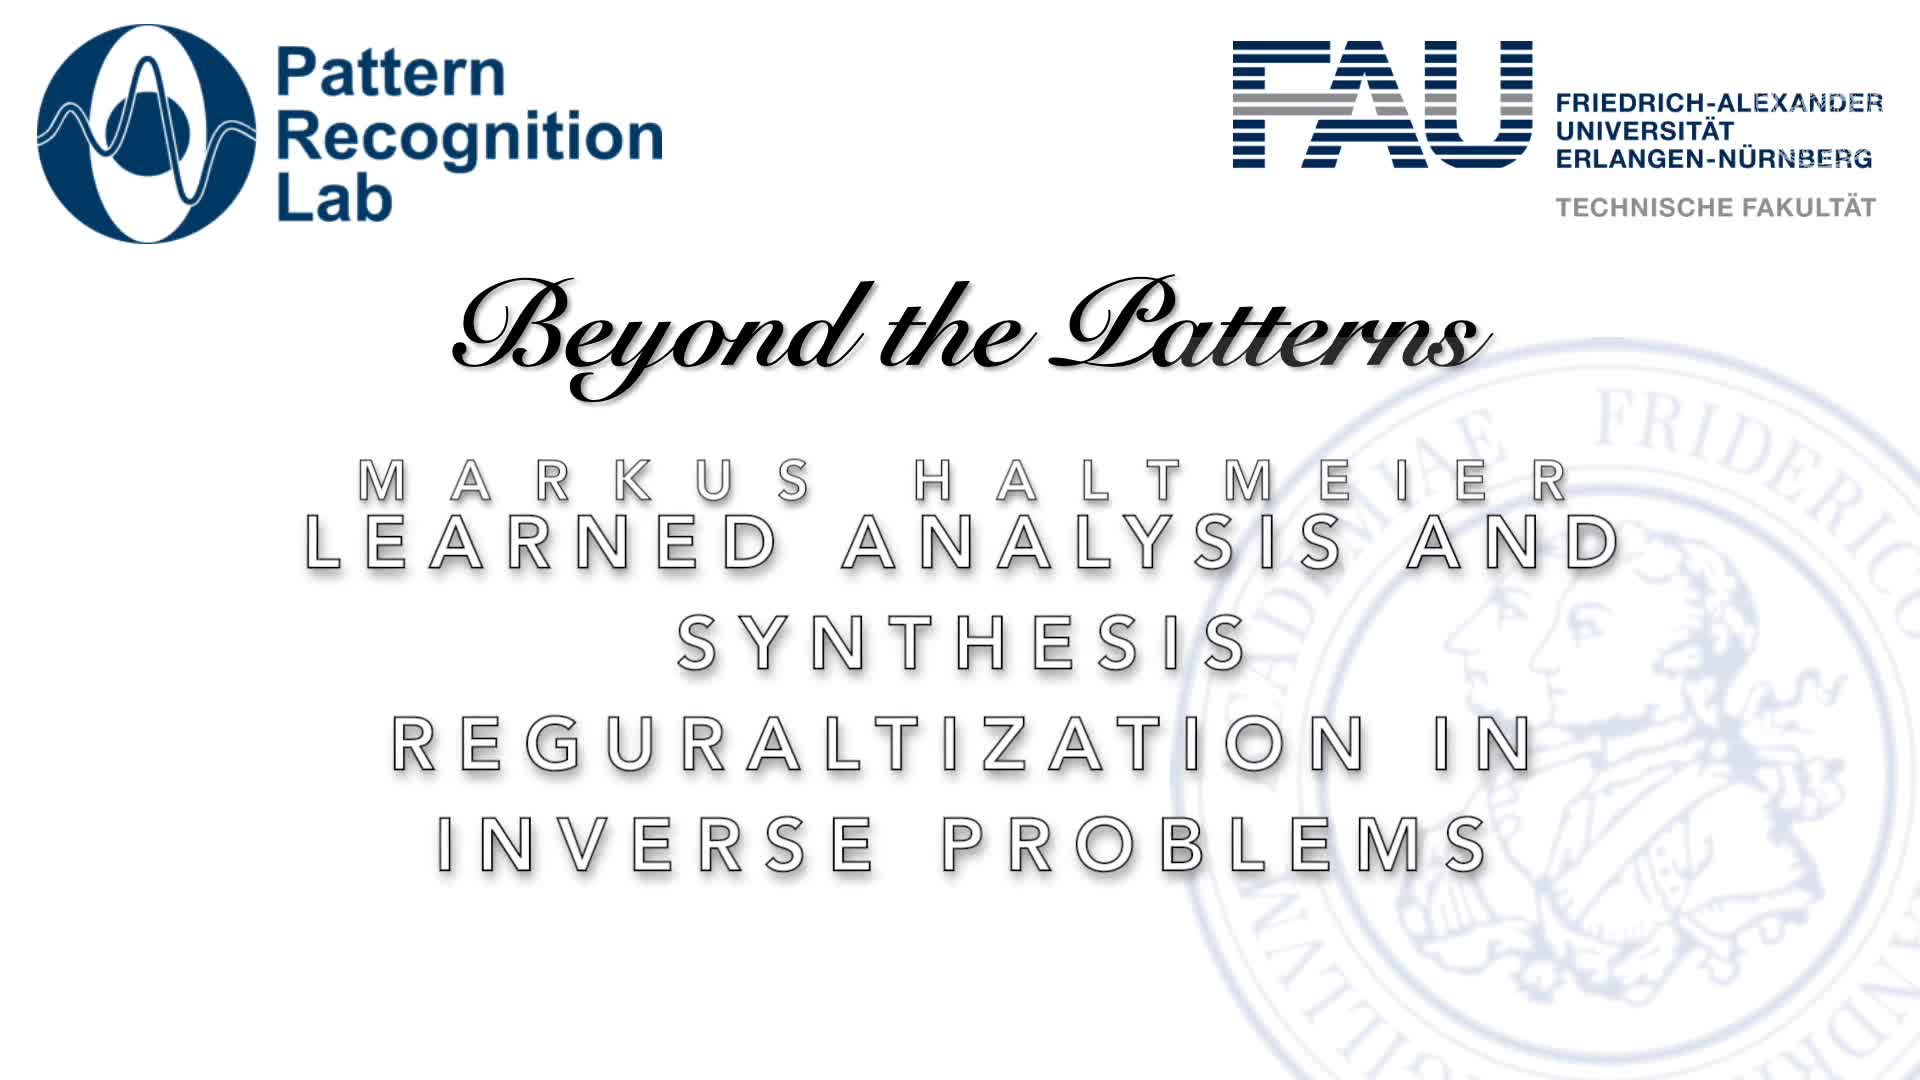 Beyond the Patterns - Markus Haltmeier - Learned Analysis and Synthesis Regularisation of Inverse Problems preview image